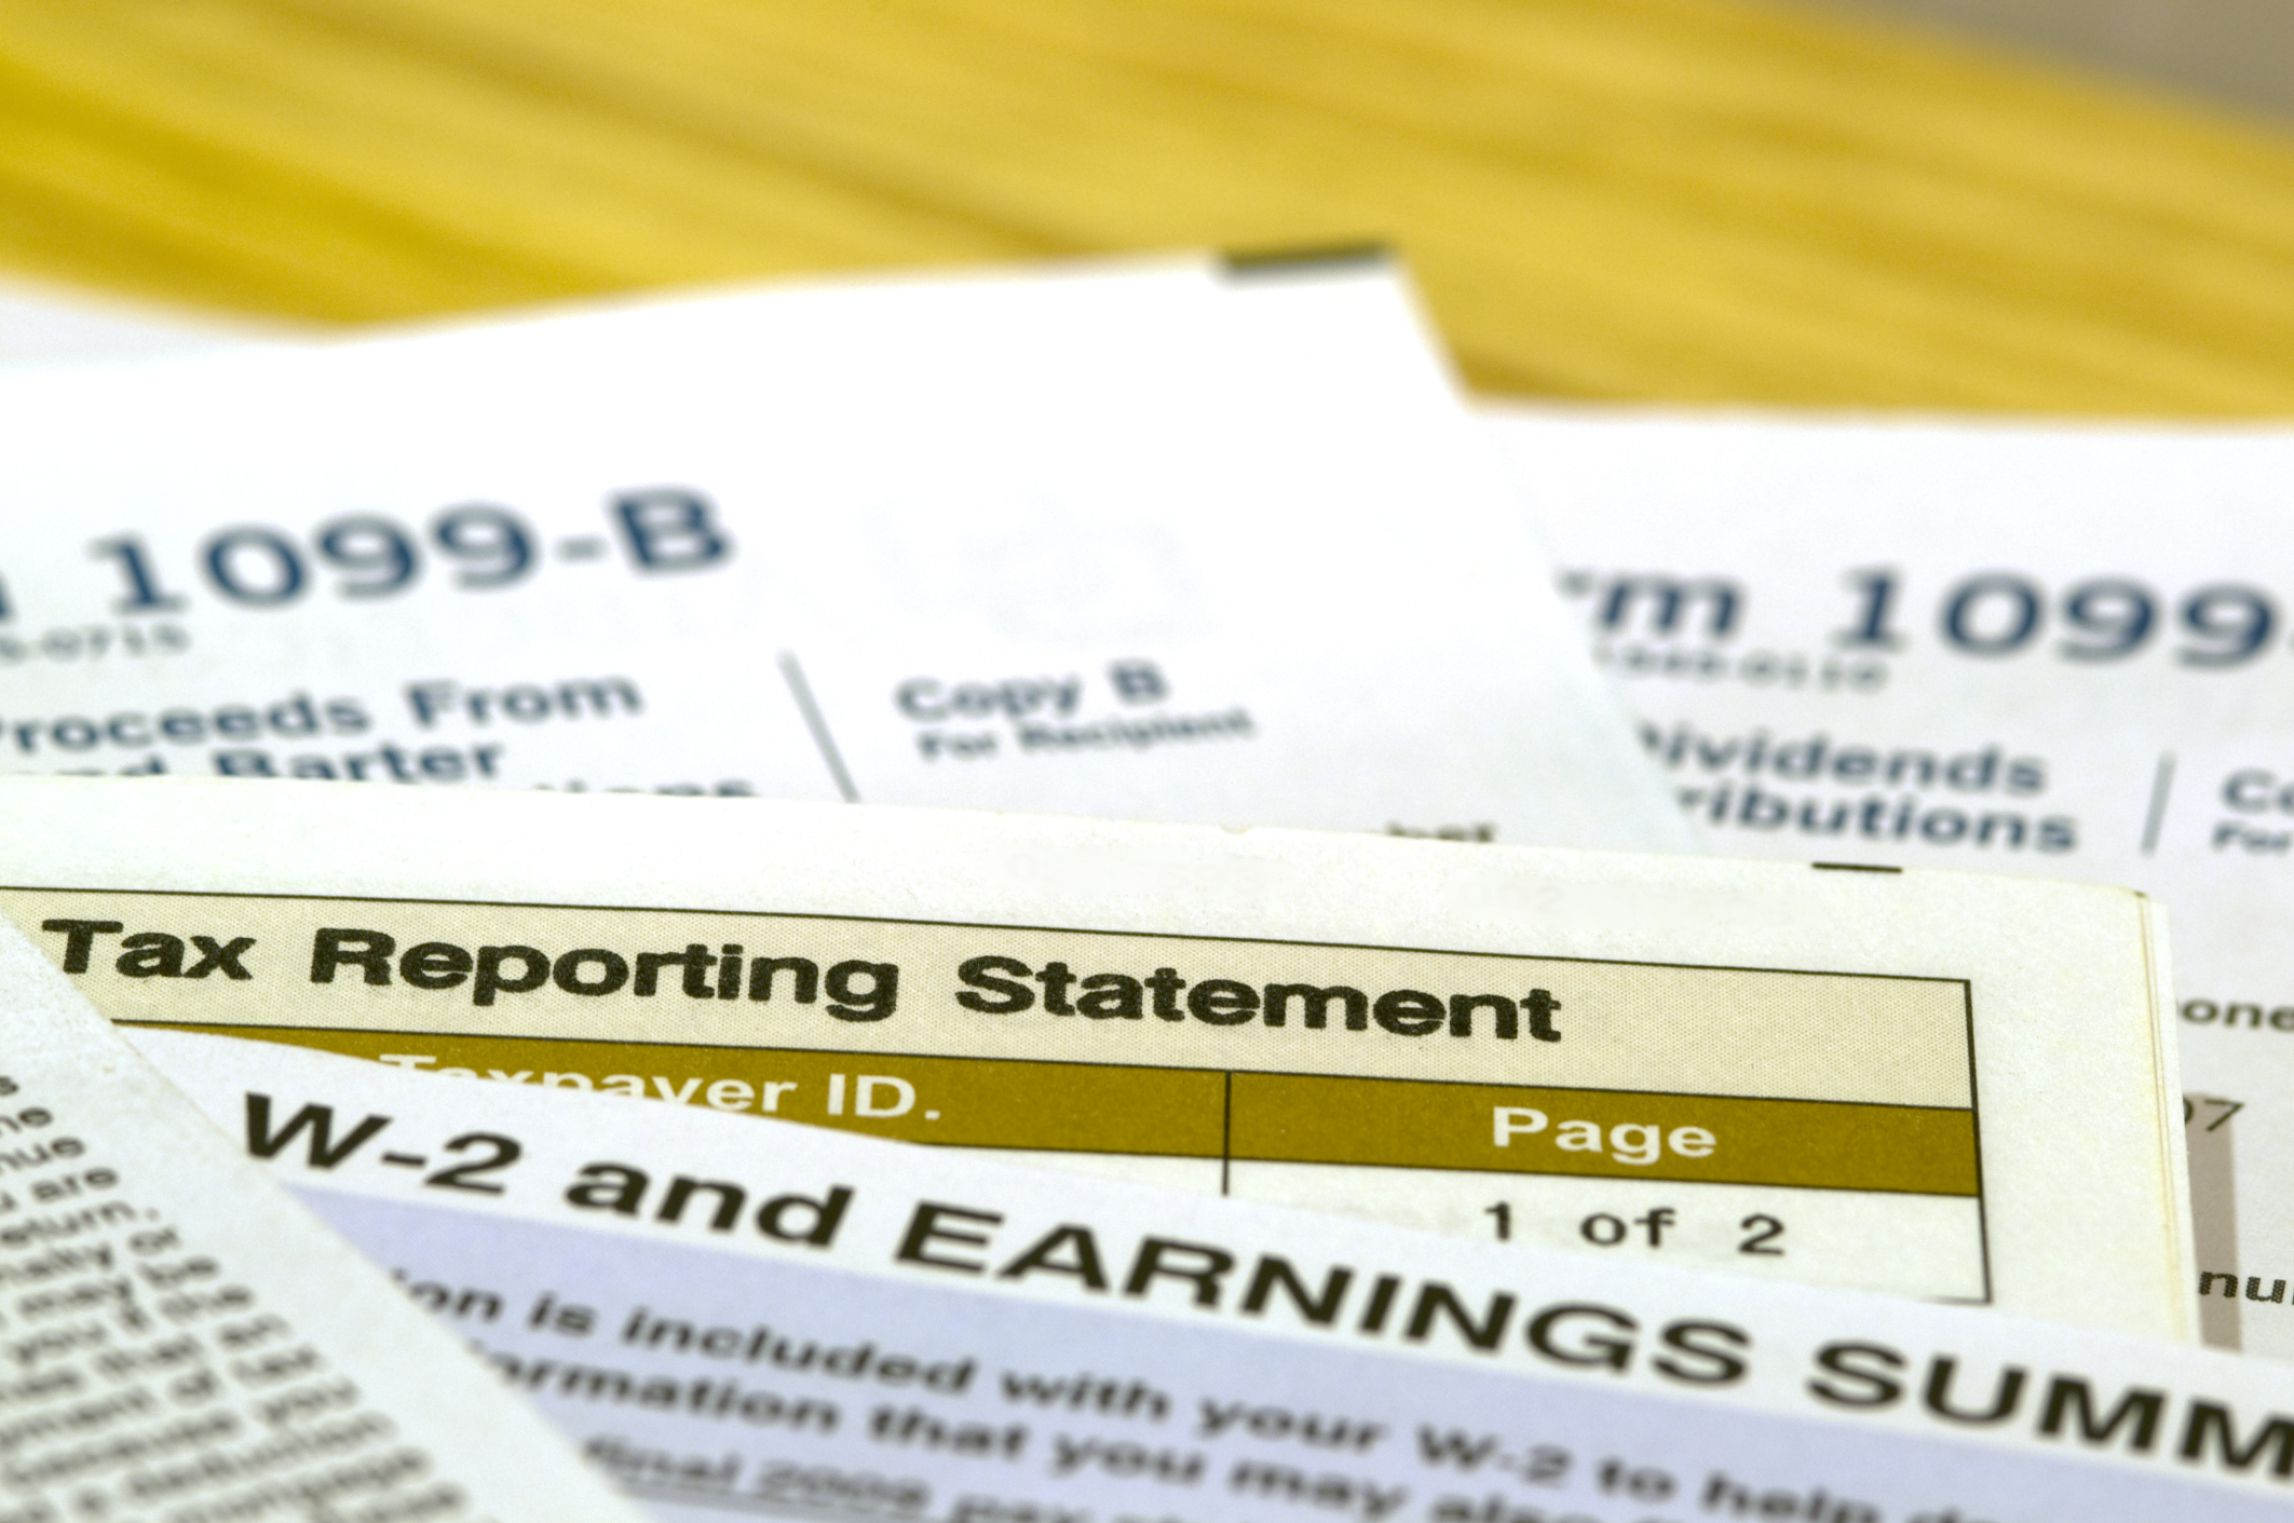 Where to Get W-2 Forms and 1099-MISC Forms